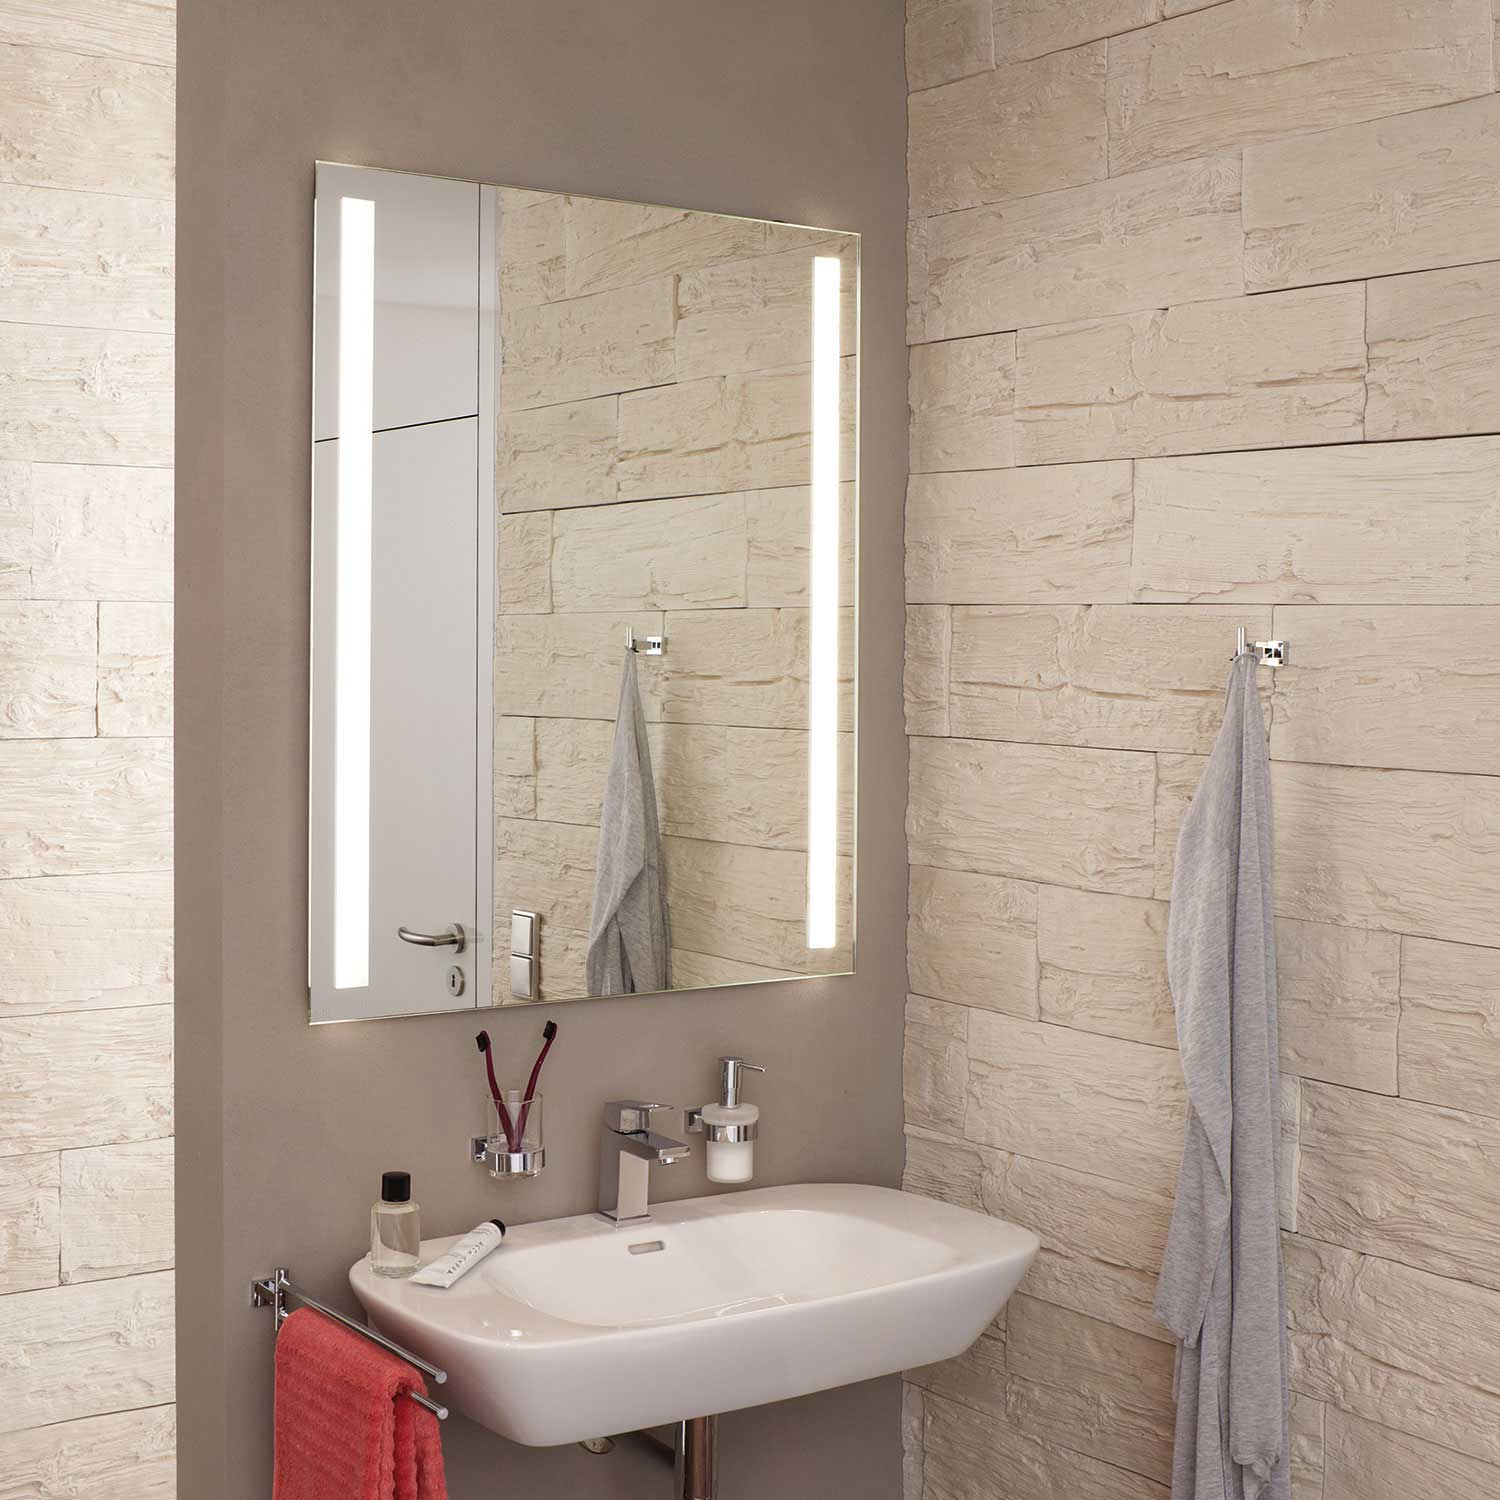 Fineline 80 X 60 Mirror With Light